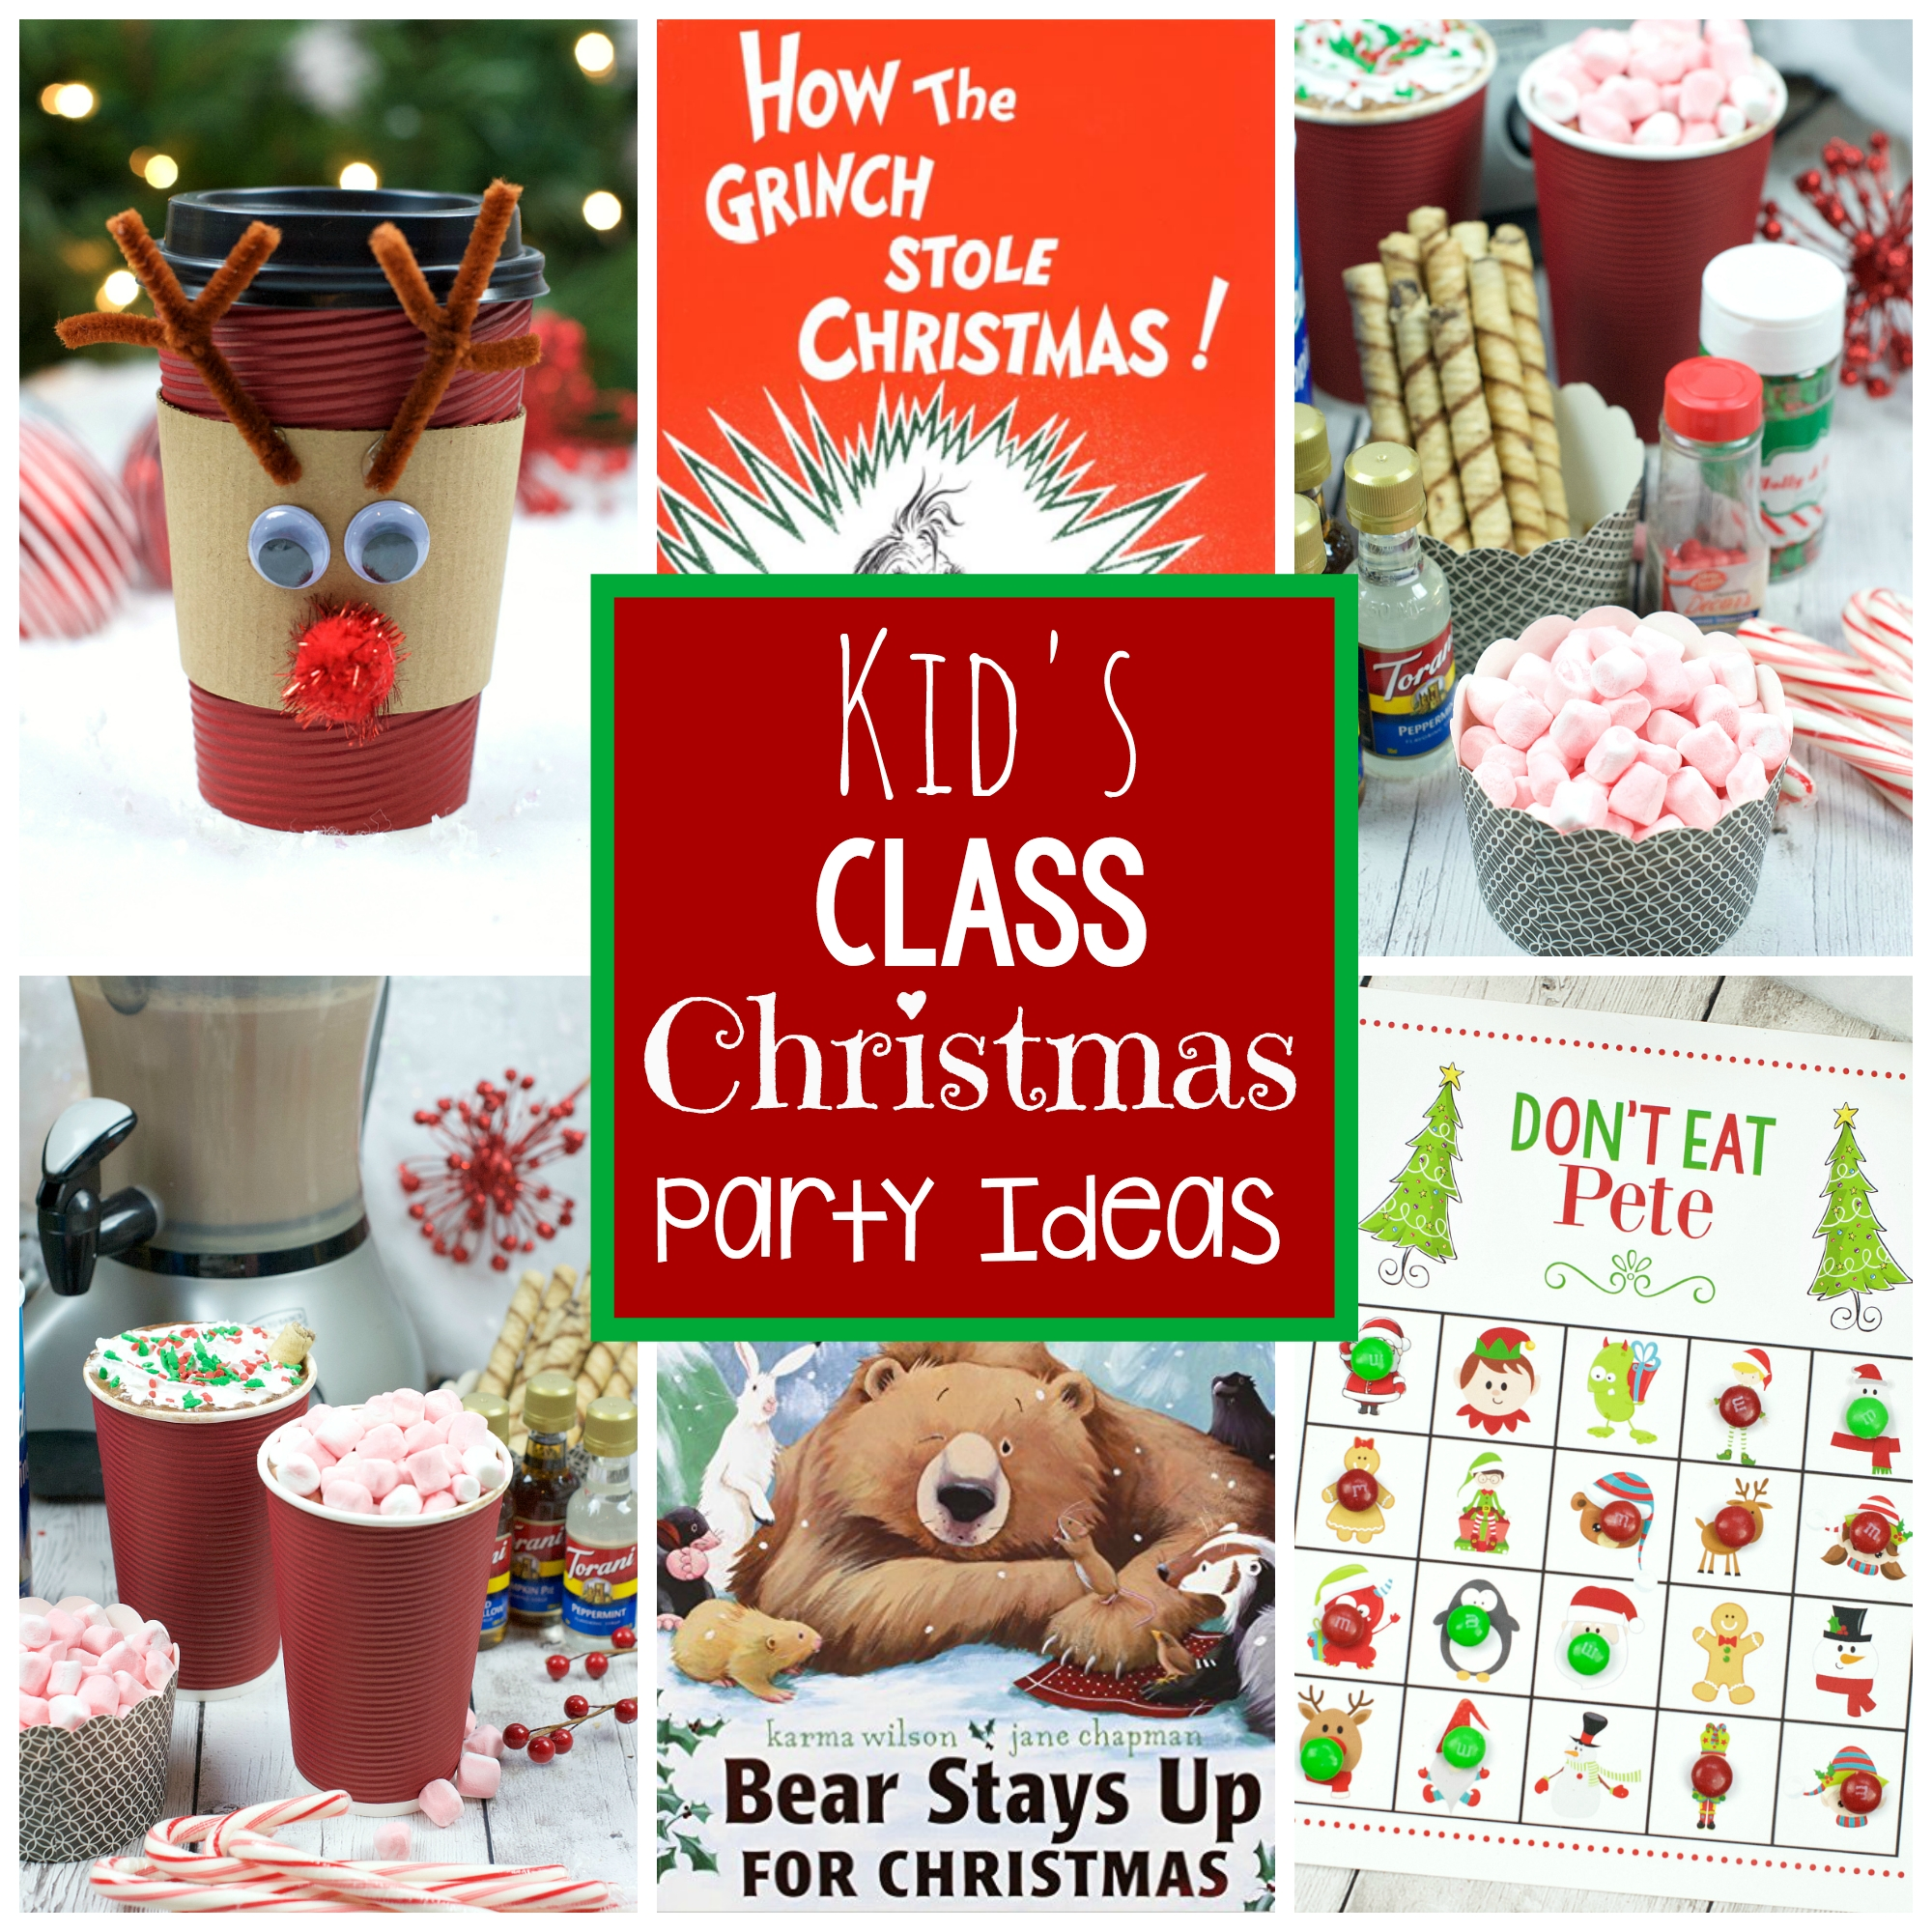 10 Stunning Christmas Picture Ideas For Children kids school christmas party ideas fun squared 2 2021